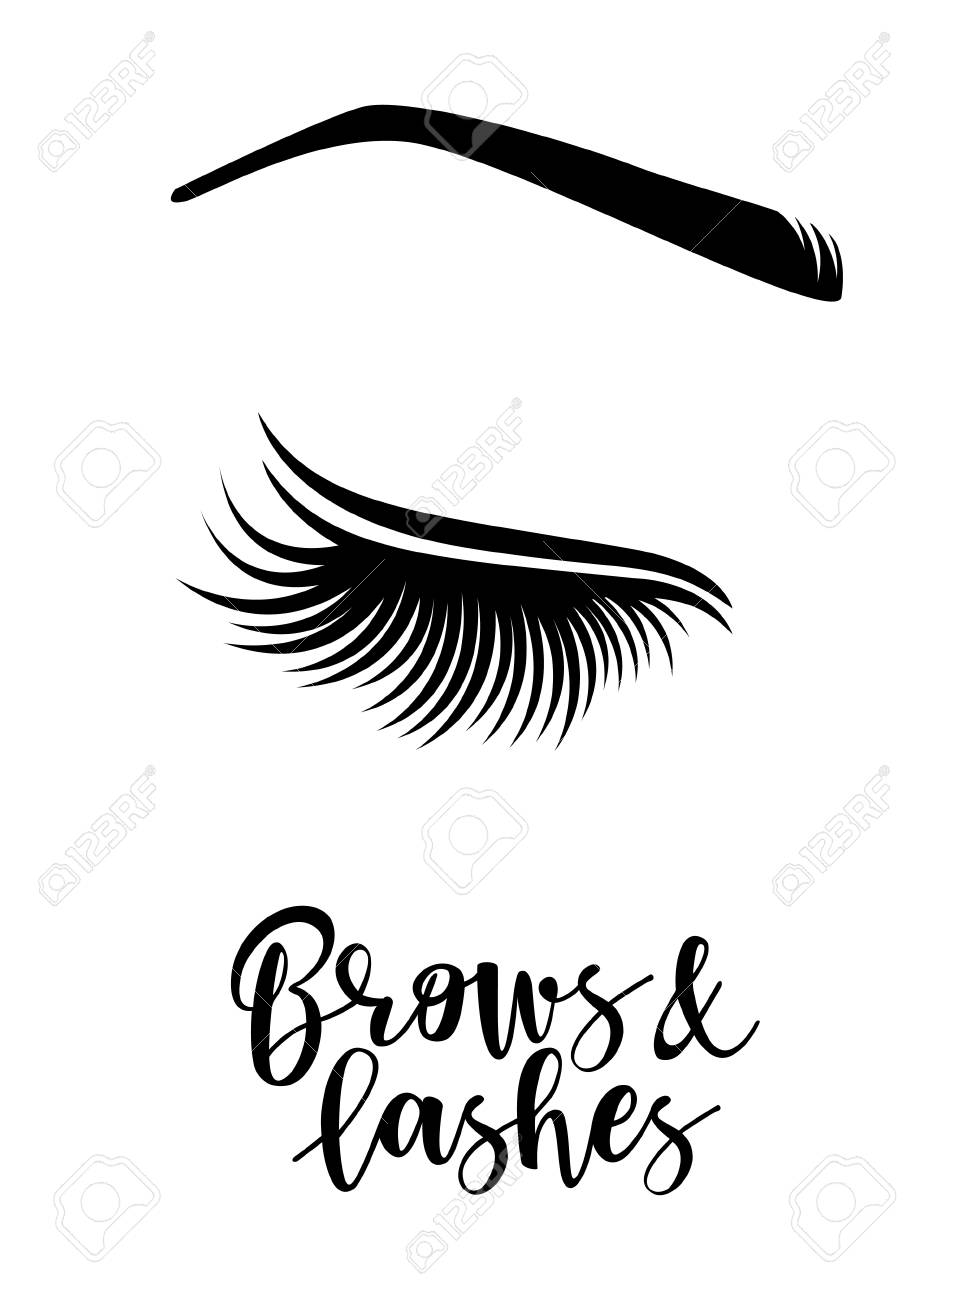 7070756ff98 Brows and lashes logo. Vector illustration of brows and lashes. For beauty  salon,